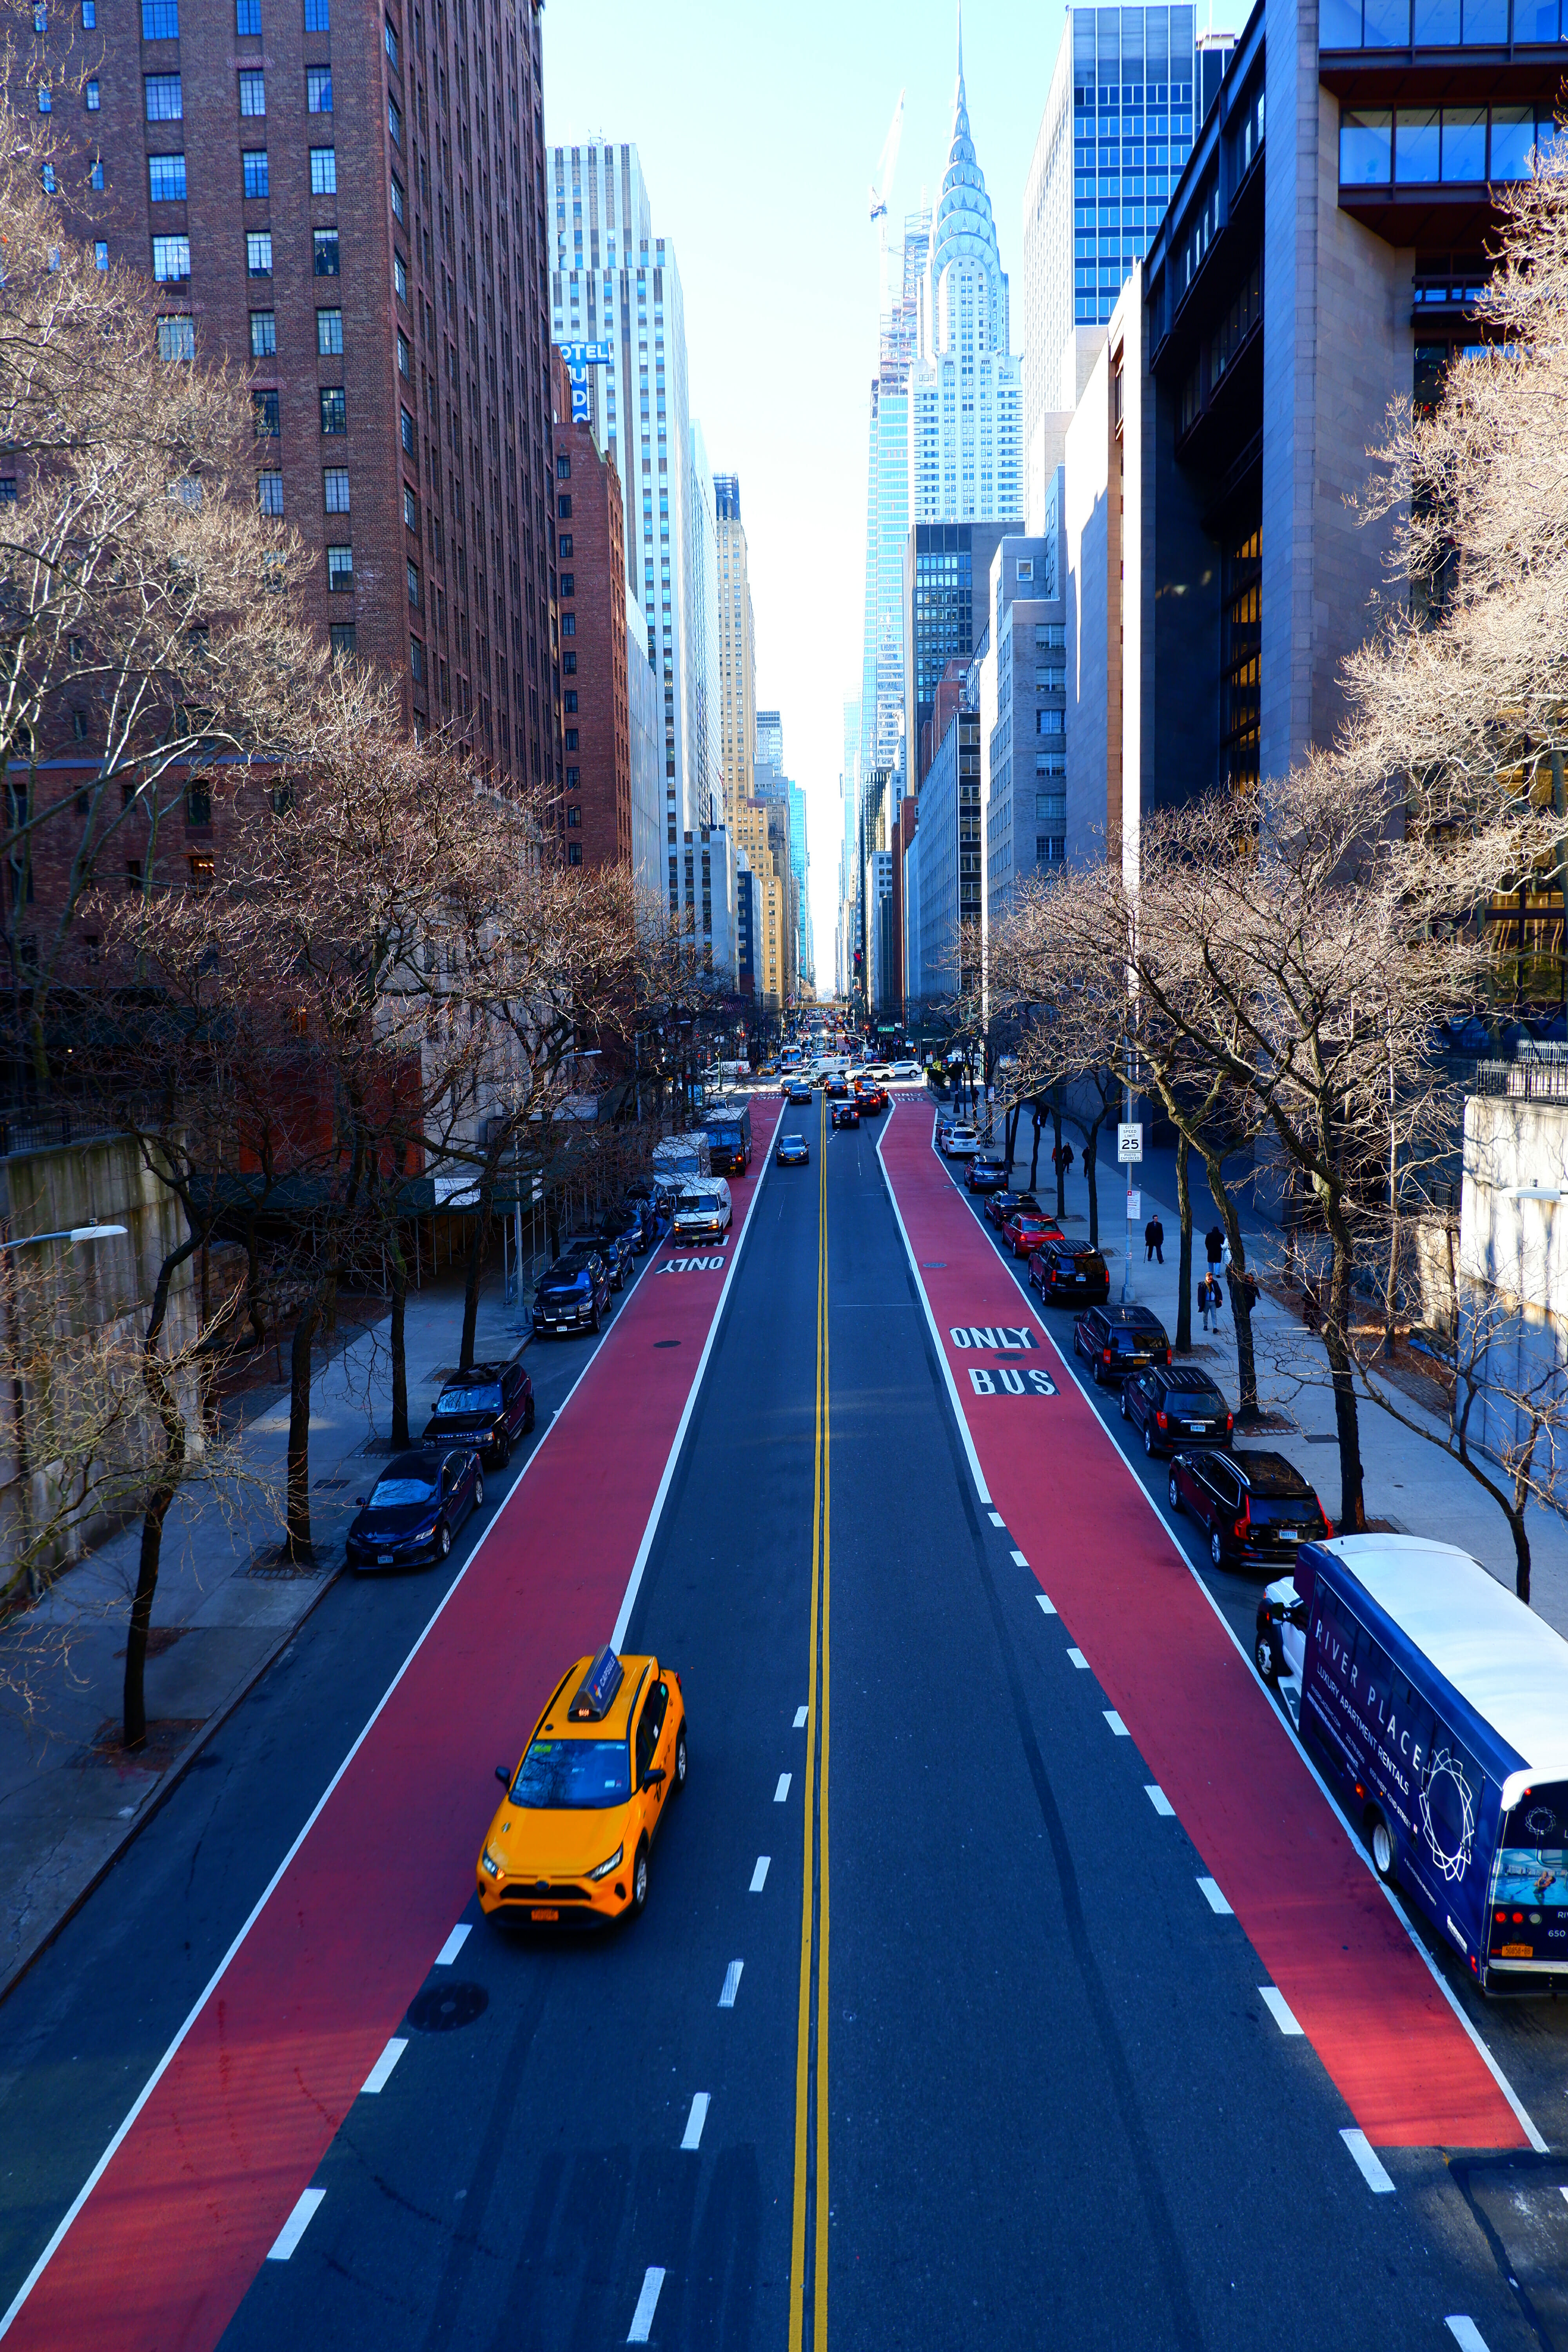 View of 42nd Street from Tudor City – High Quality Wallpaper